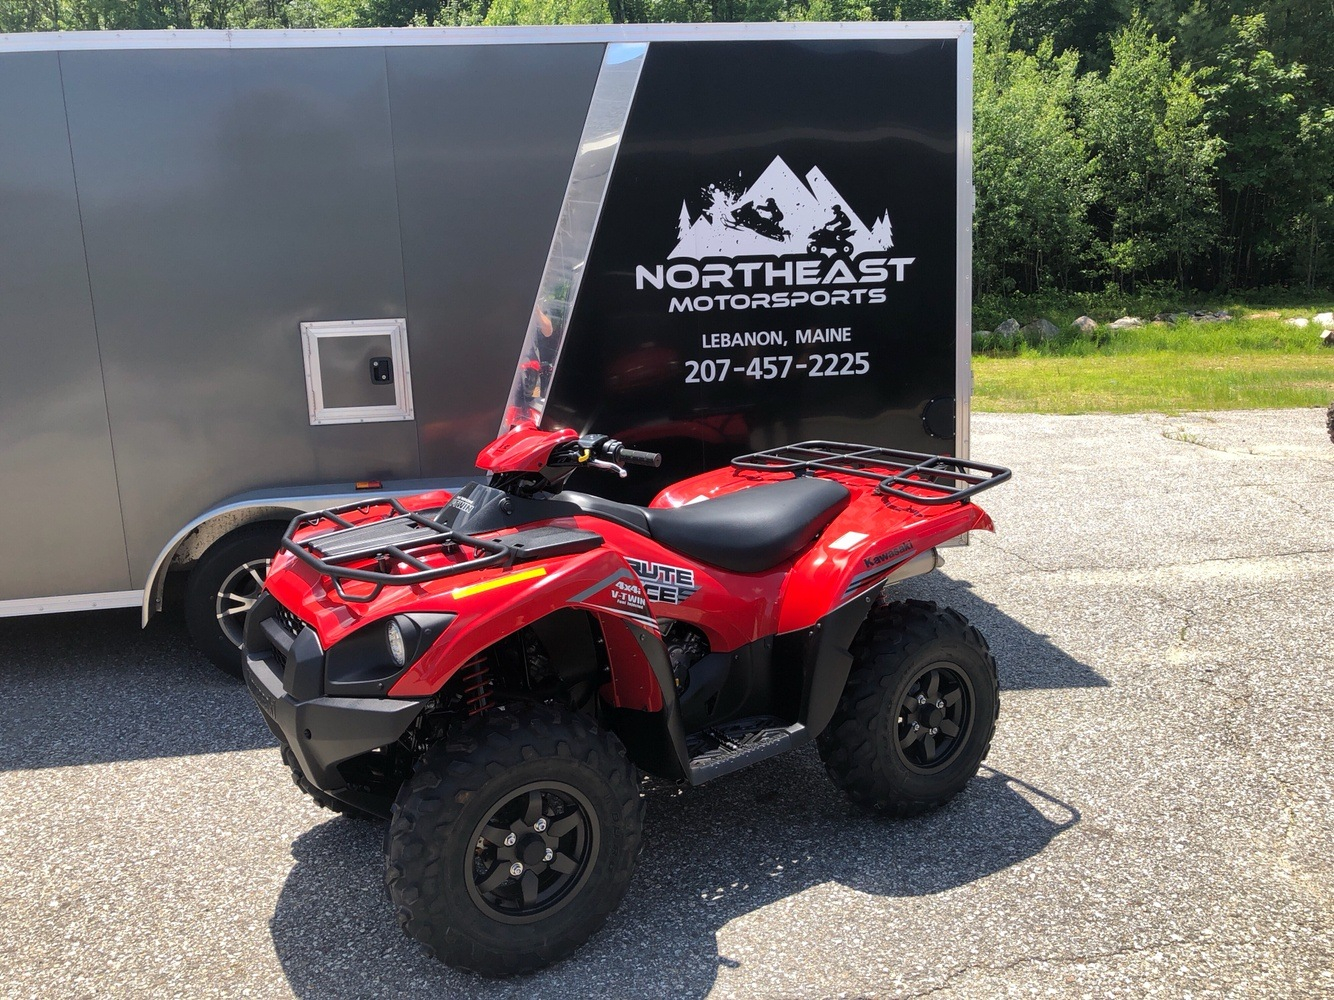 2020 Kawasaki Brute Force 750 4x4i in Lebanon, Maine - Photo 1